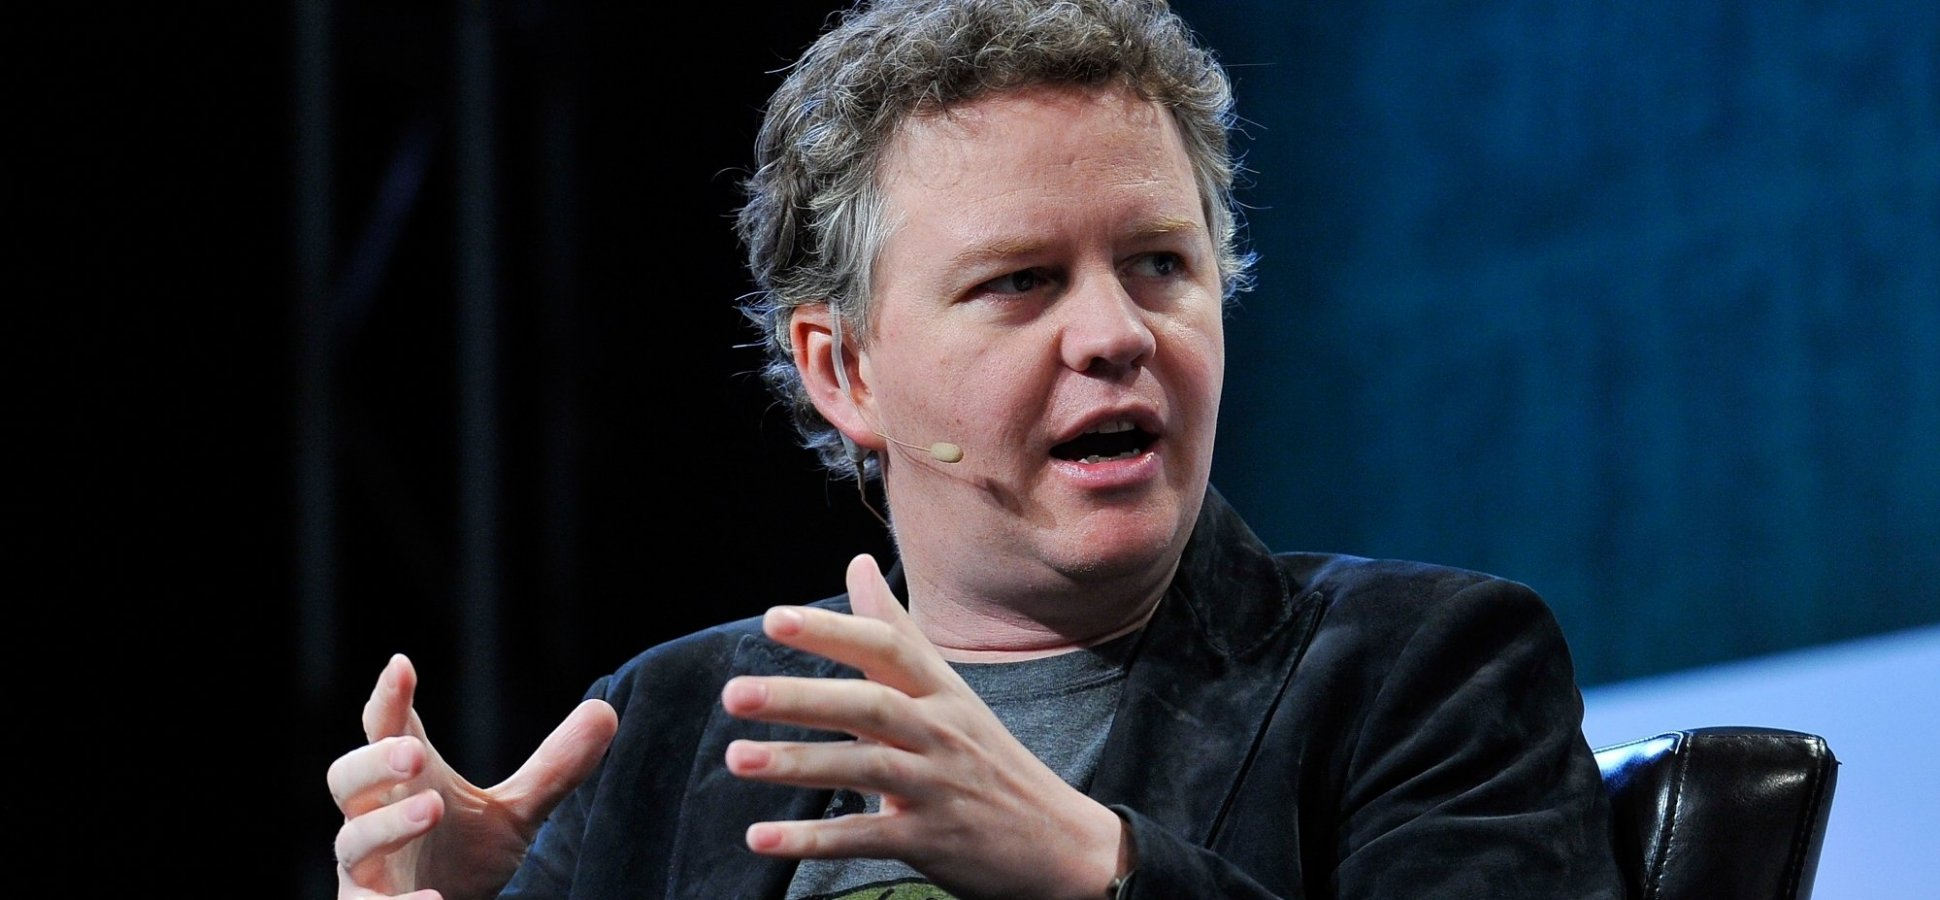 A Cloudflare Outage Takes Down the Internet for the Second Time in a Week. Here's How the CEO Responded